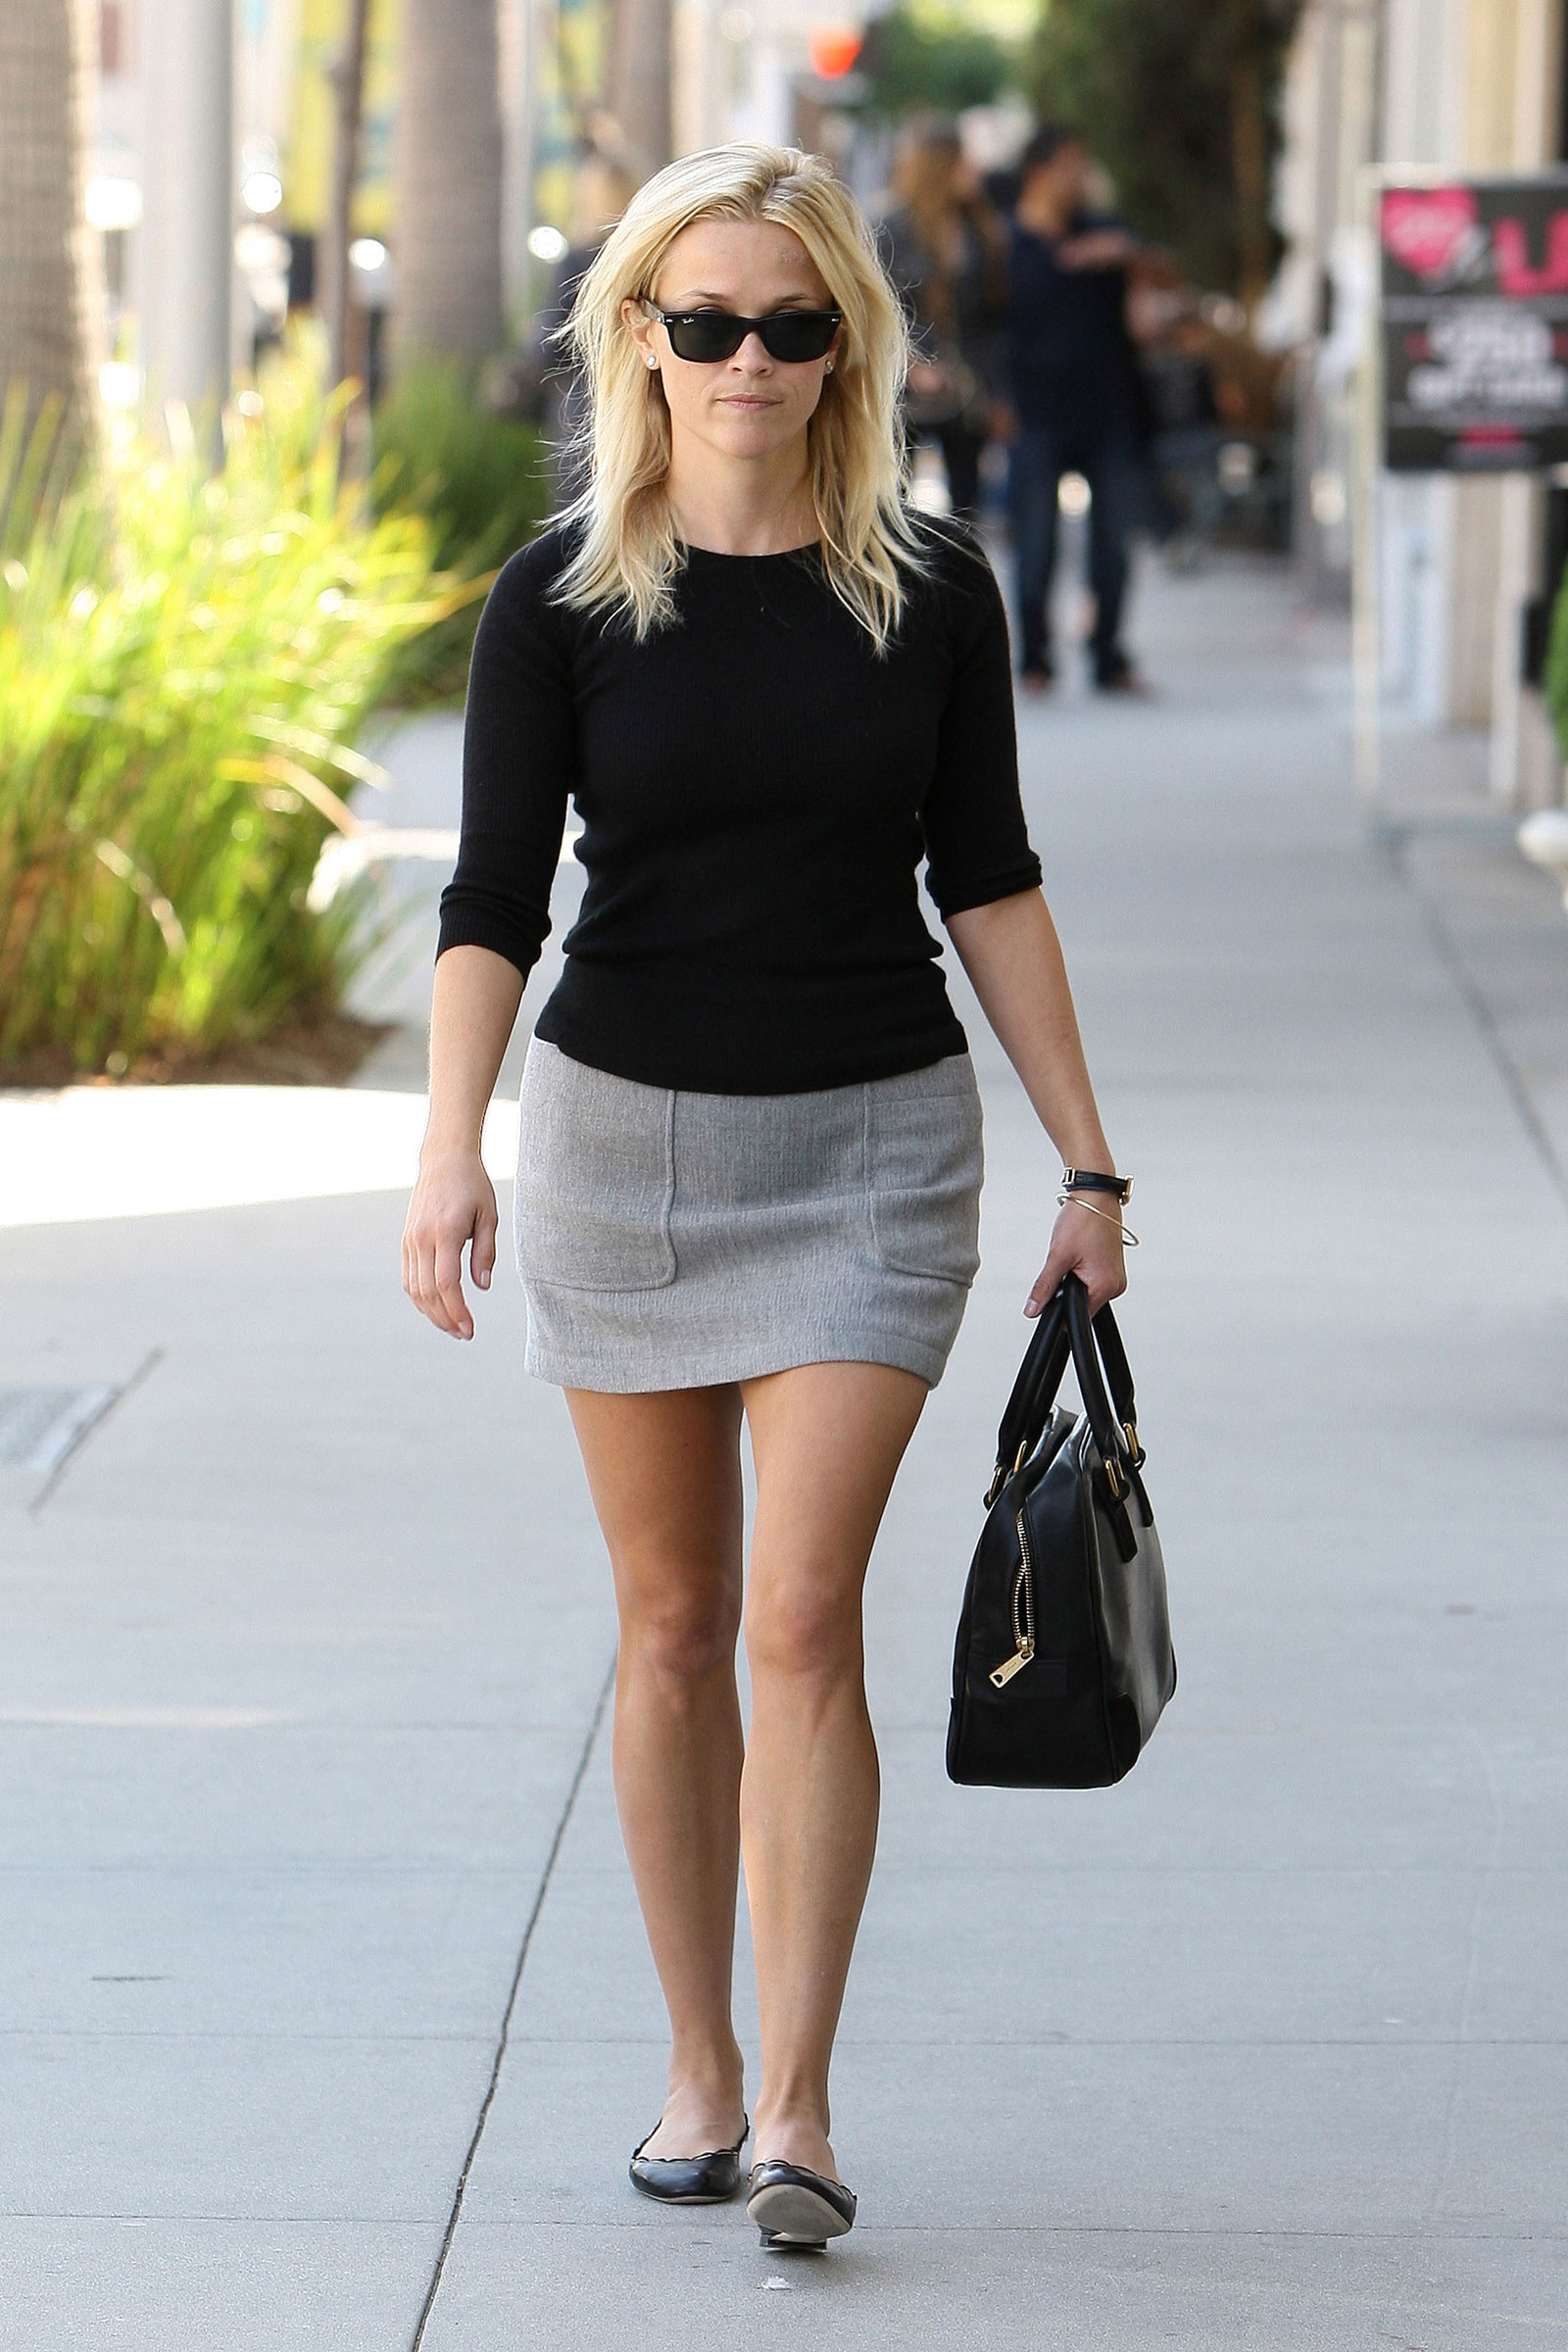 Reese Witherspoon in Beverly Hills - HawtCelebs - HawtCelebs Reese Witherspoon